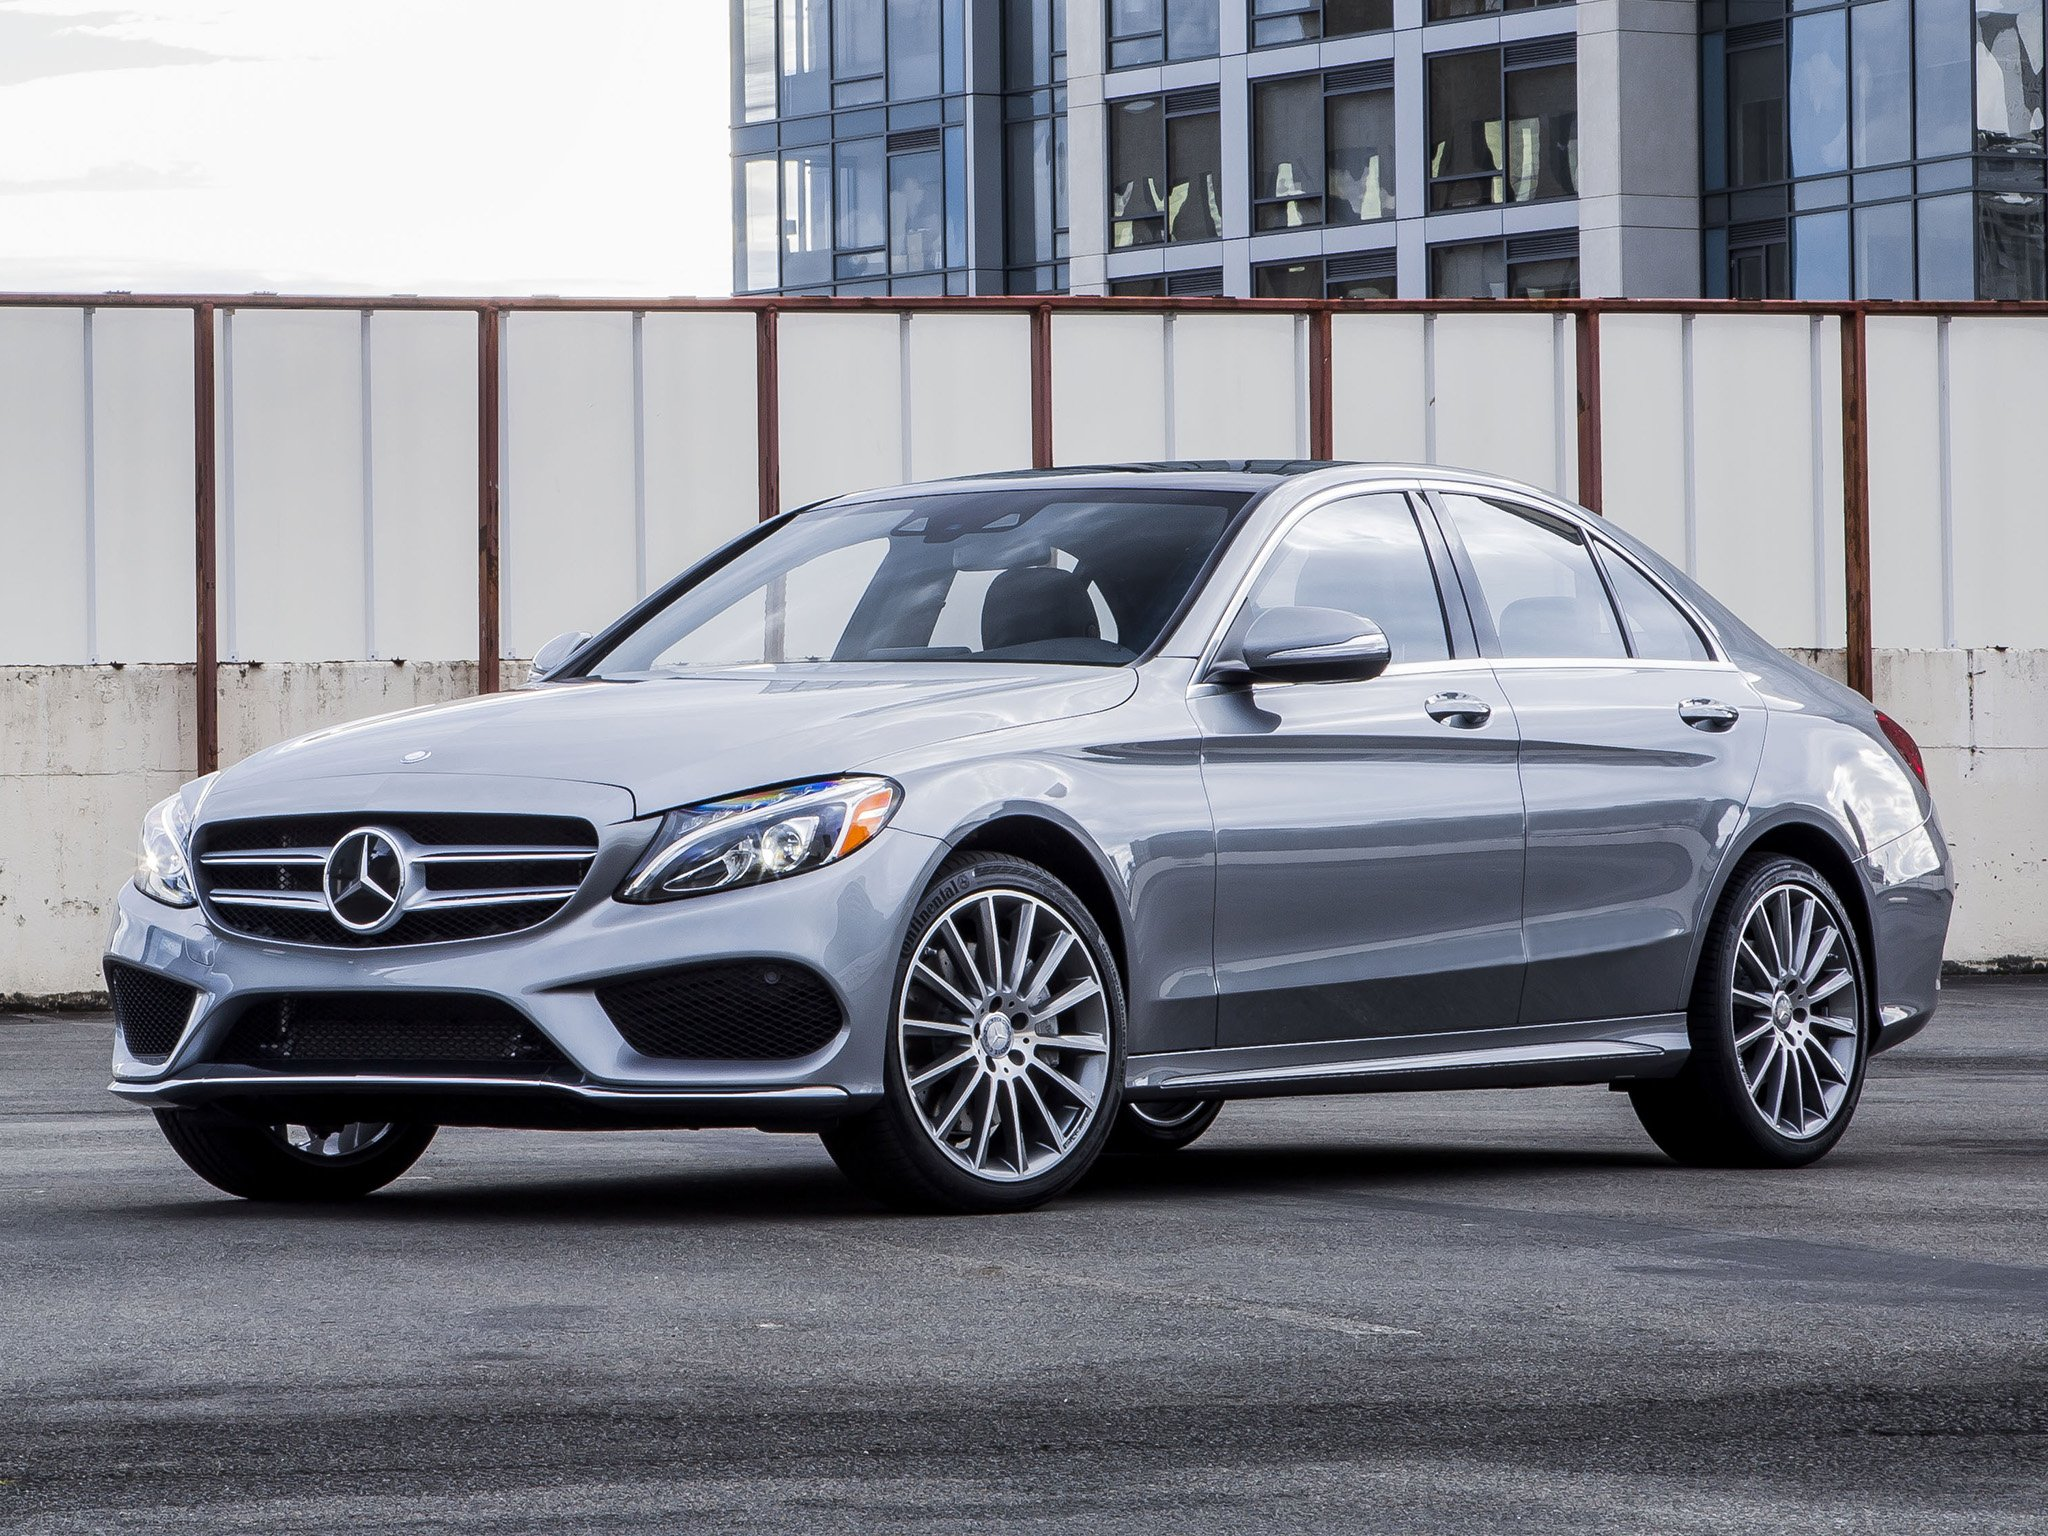 2015 Mercedes Benz C300 4MATIC AMG US-spec (W205) 300